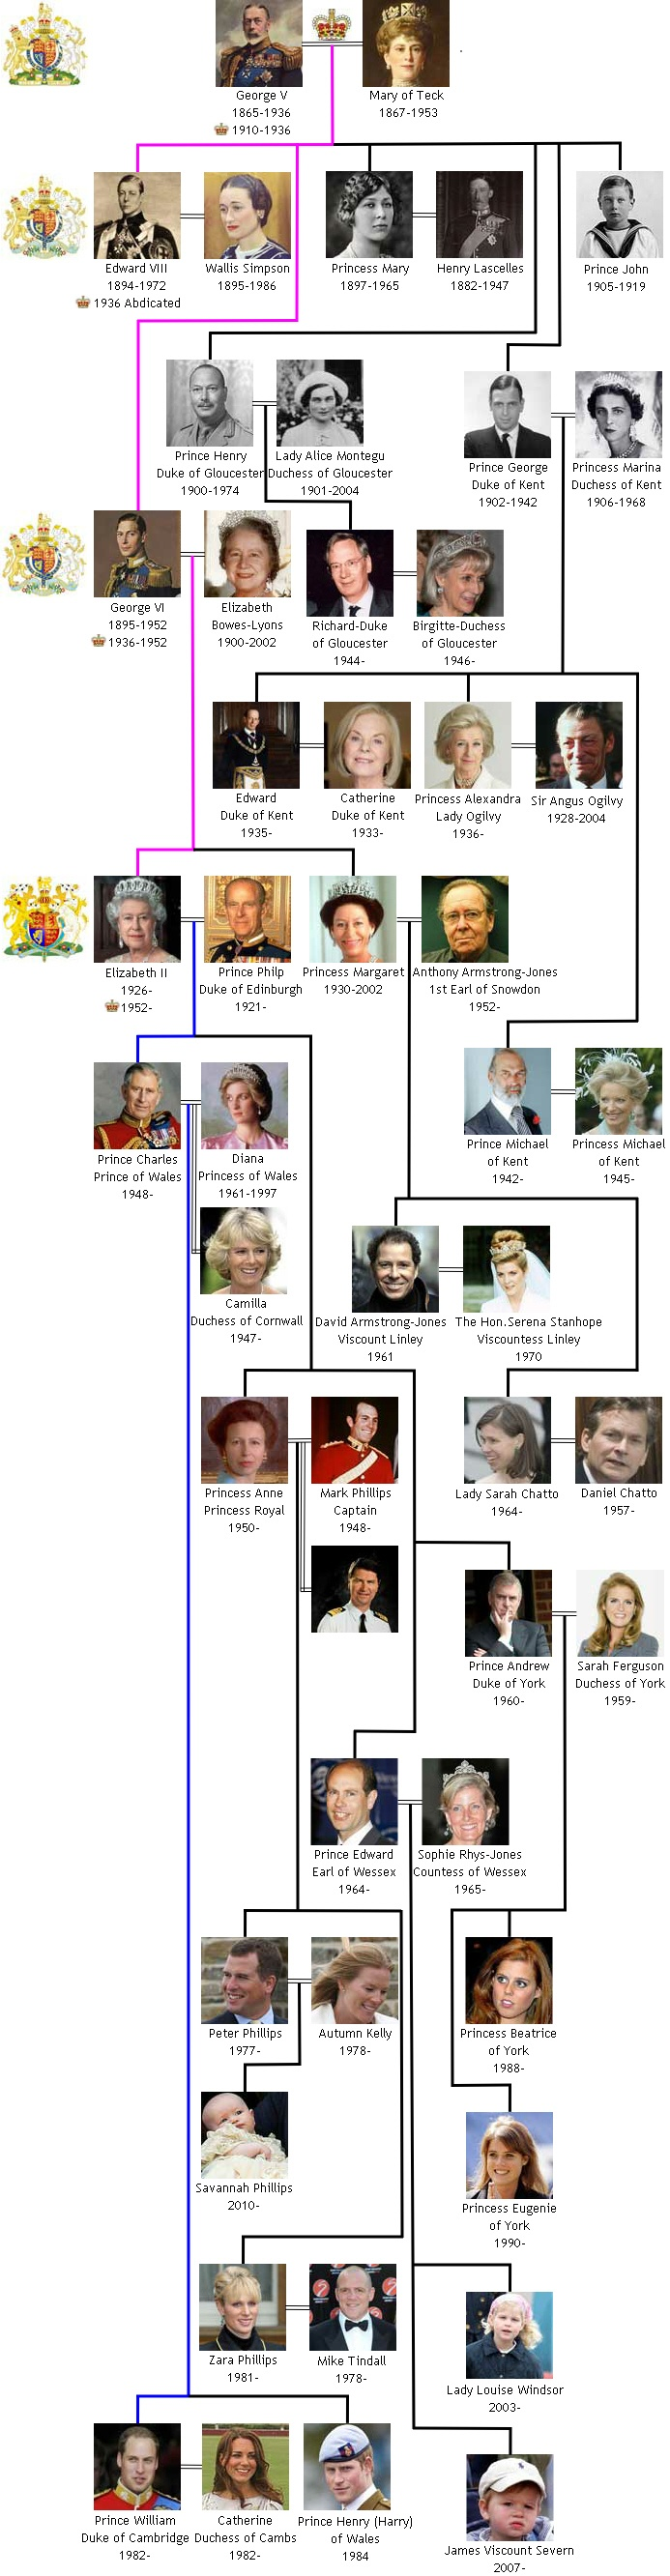 House of Windsor family tree...now Prince George has been added to the tree!